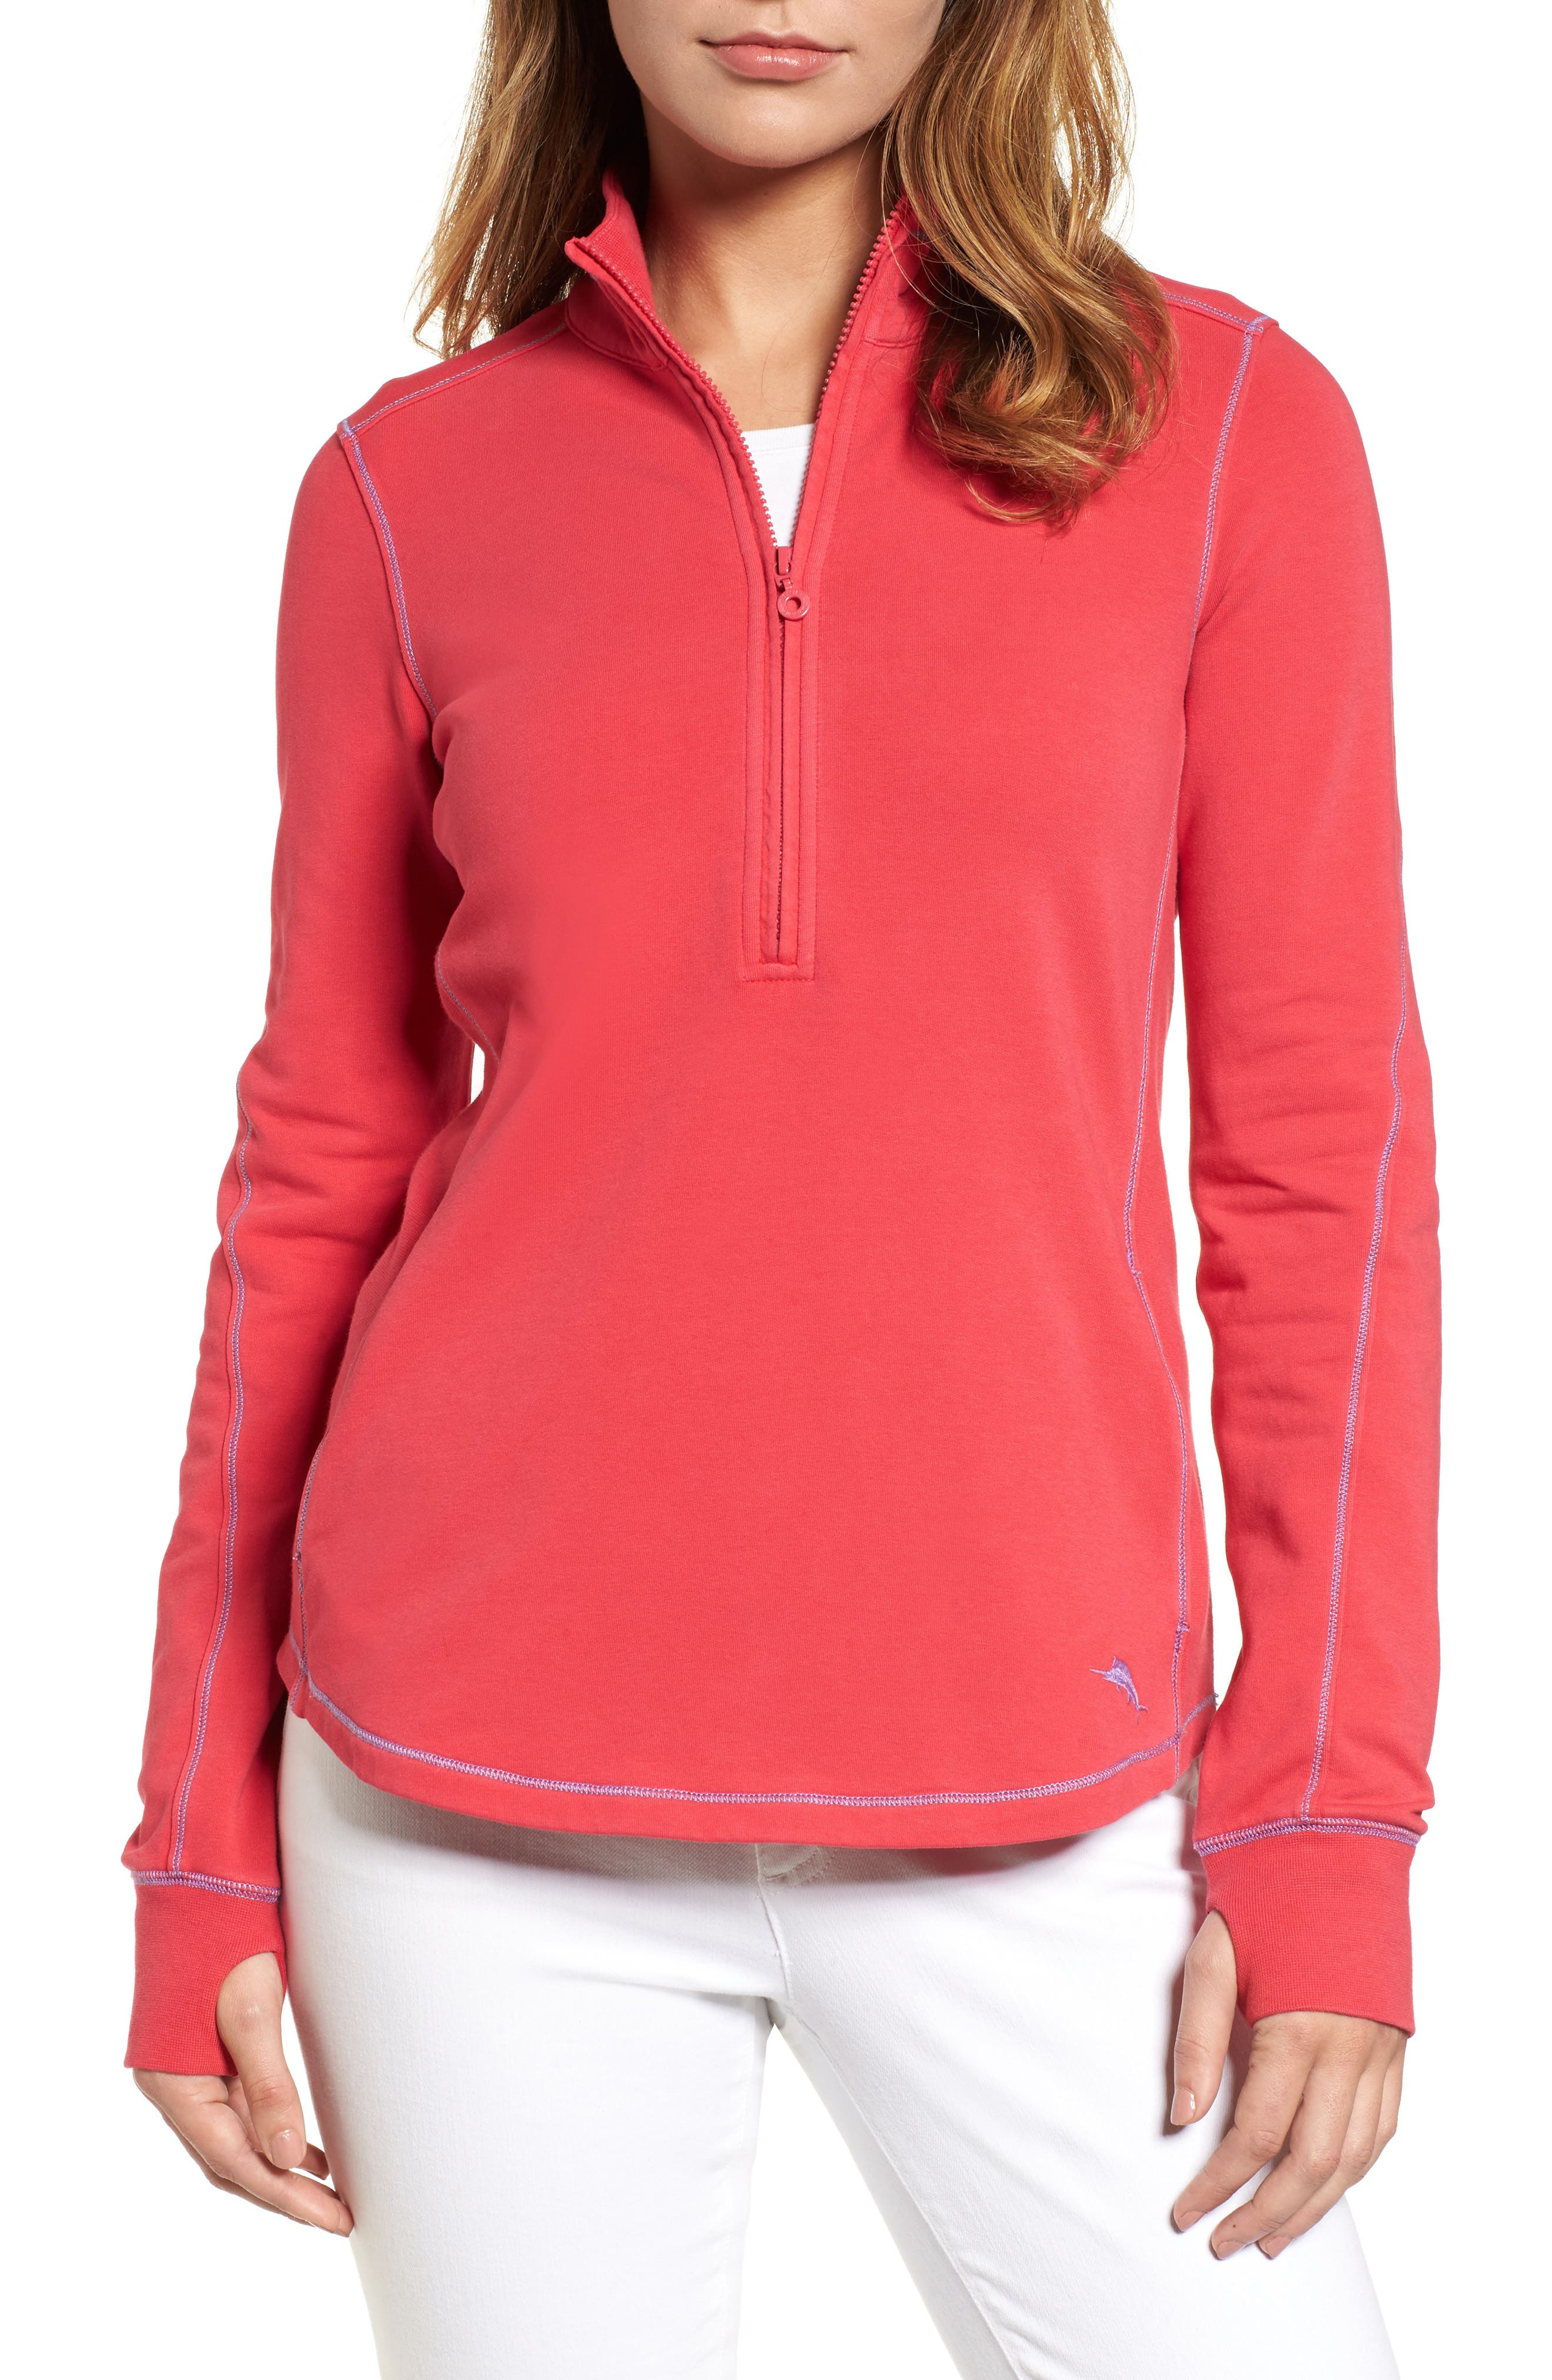 Tommy Bahama Jen And Terry Half Zip Top, Pink